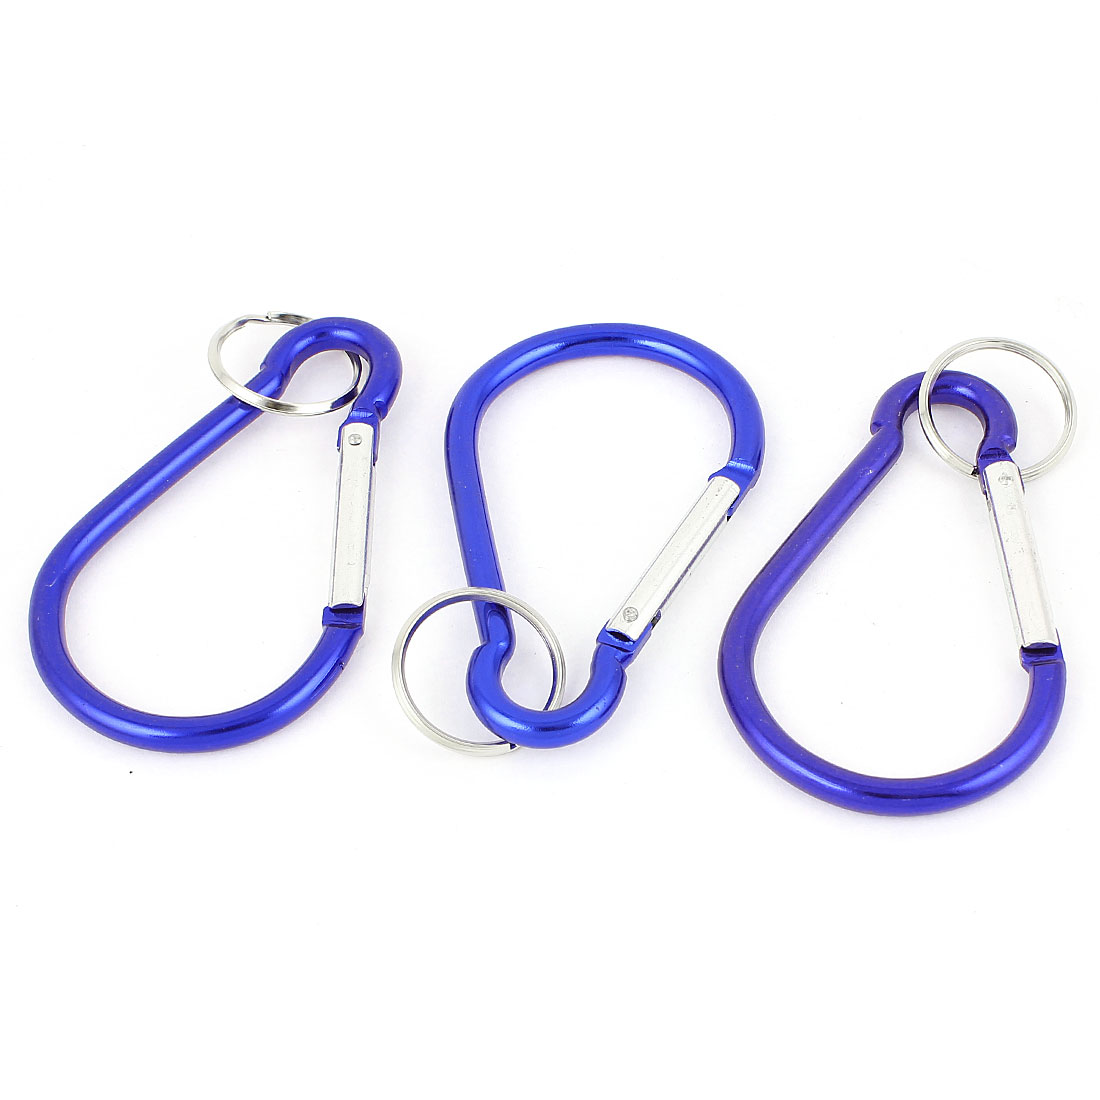 Outdoor Camping Metal Carabiner Spring Loaded Belt Clips Hook w Key Chain 3pcs Blue